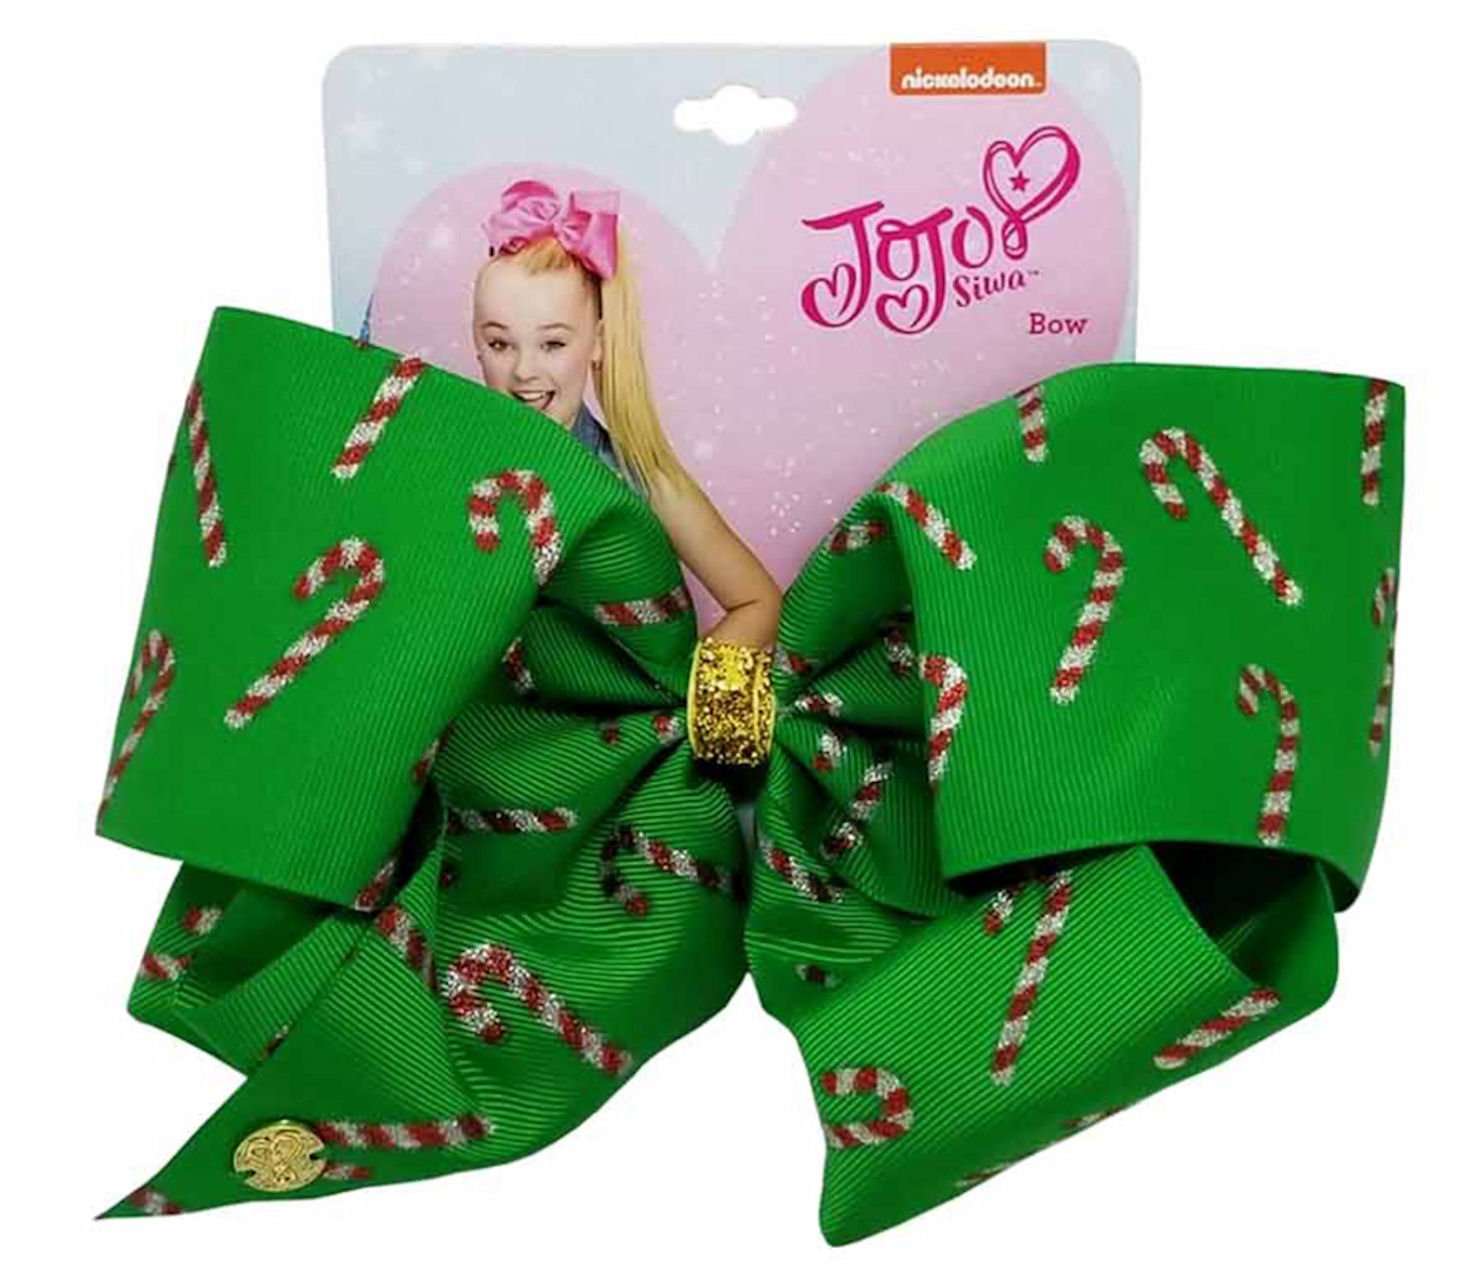 Amazon.com : Jojo Siwa Large Red and Green Ombre Christmas Bow : Beauty